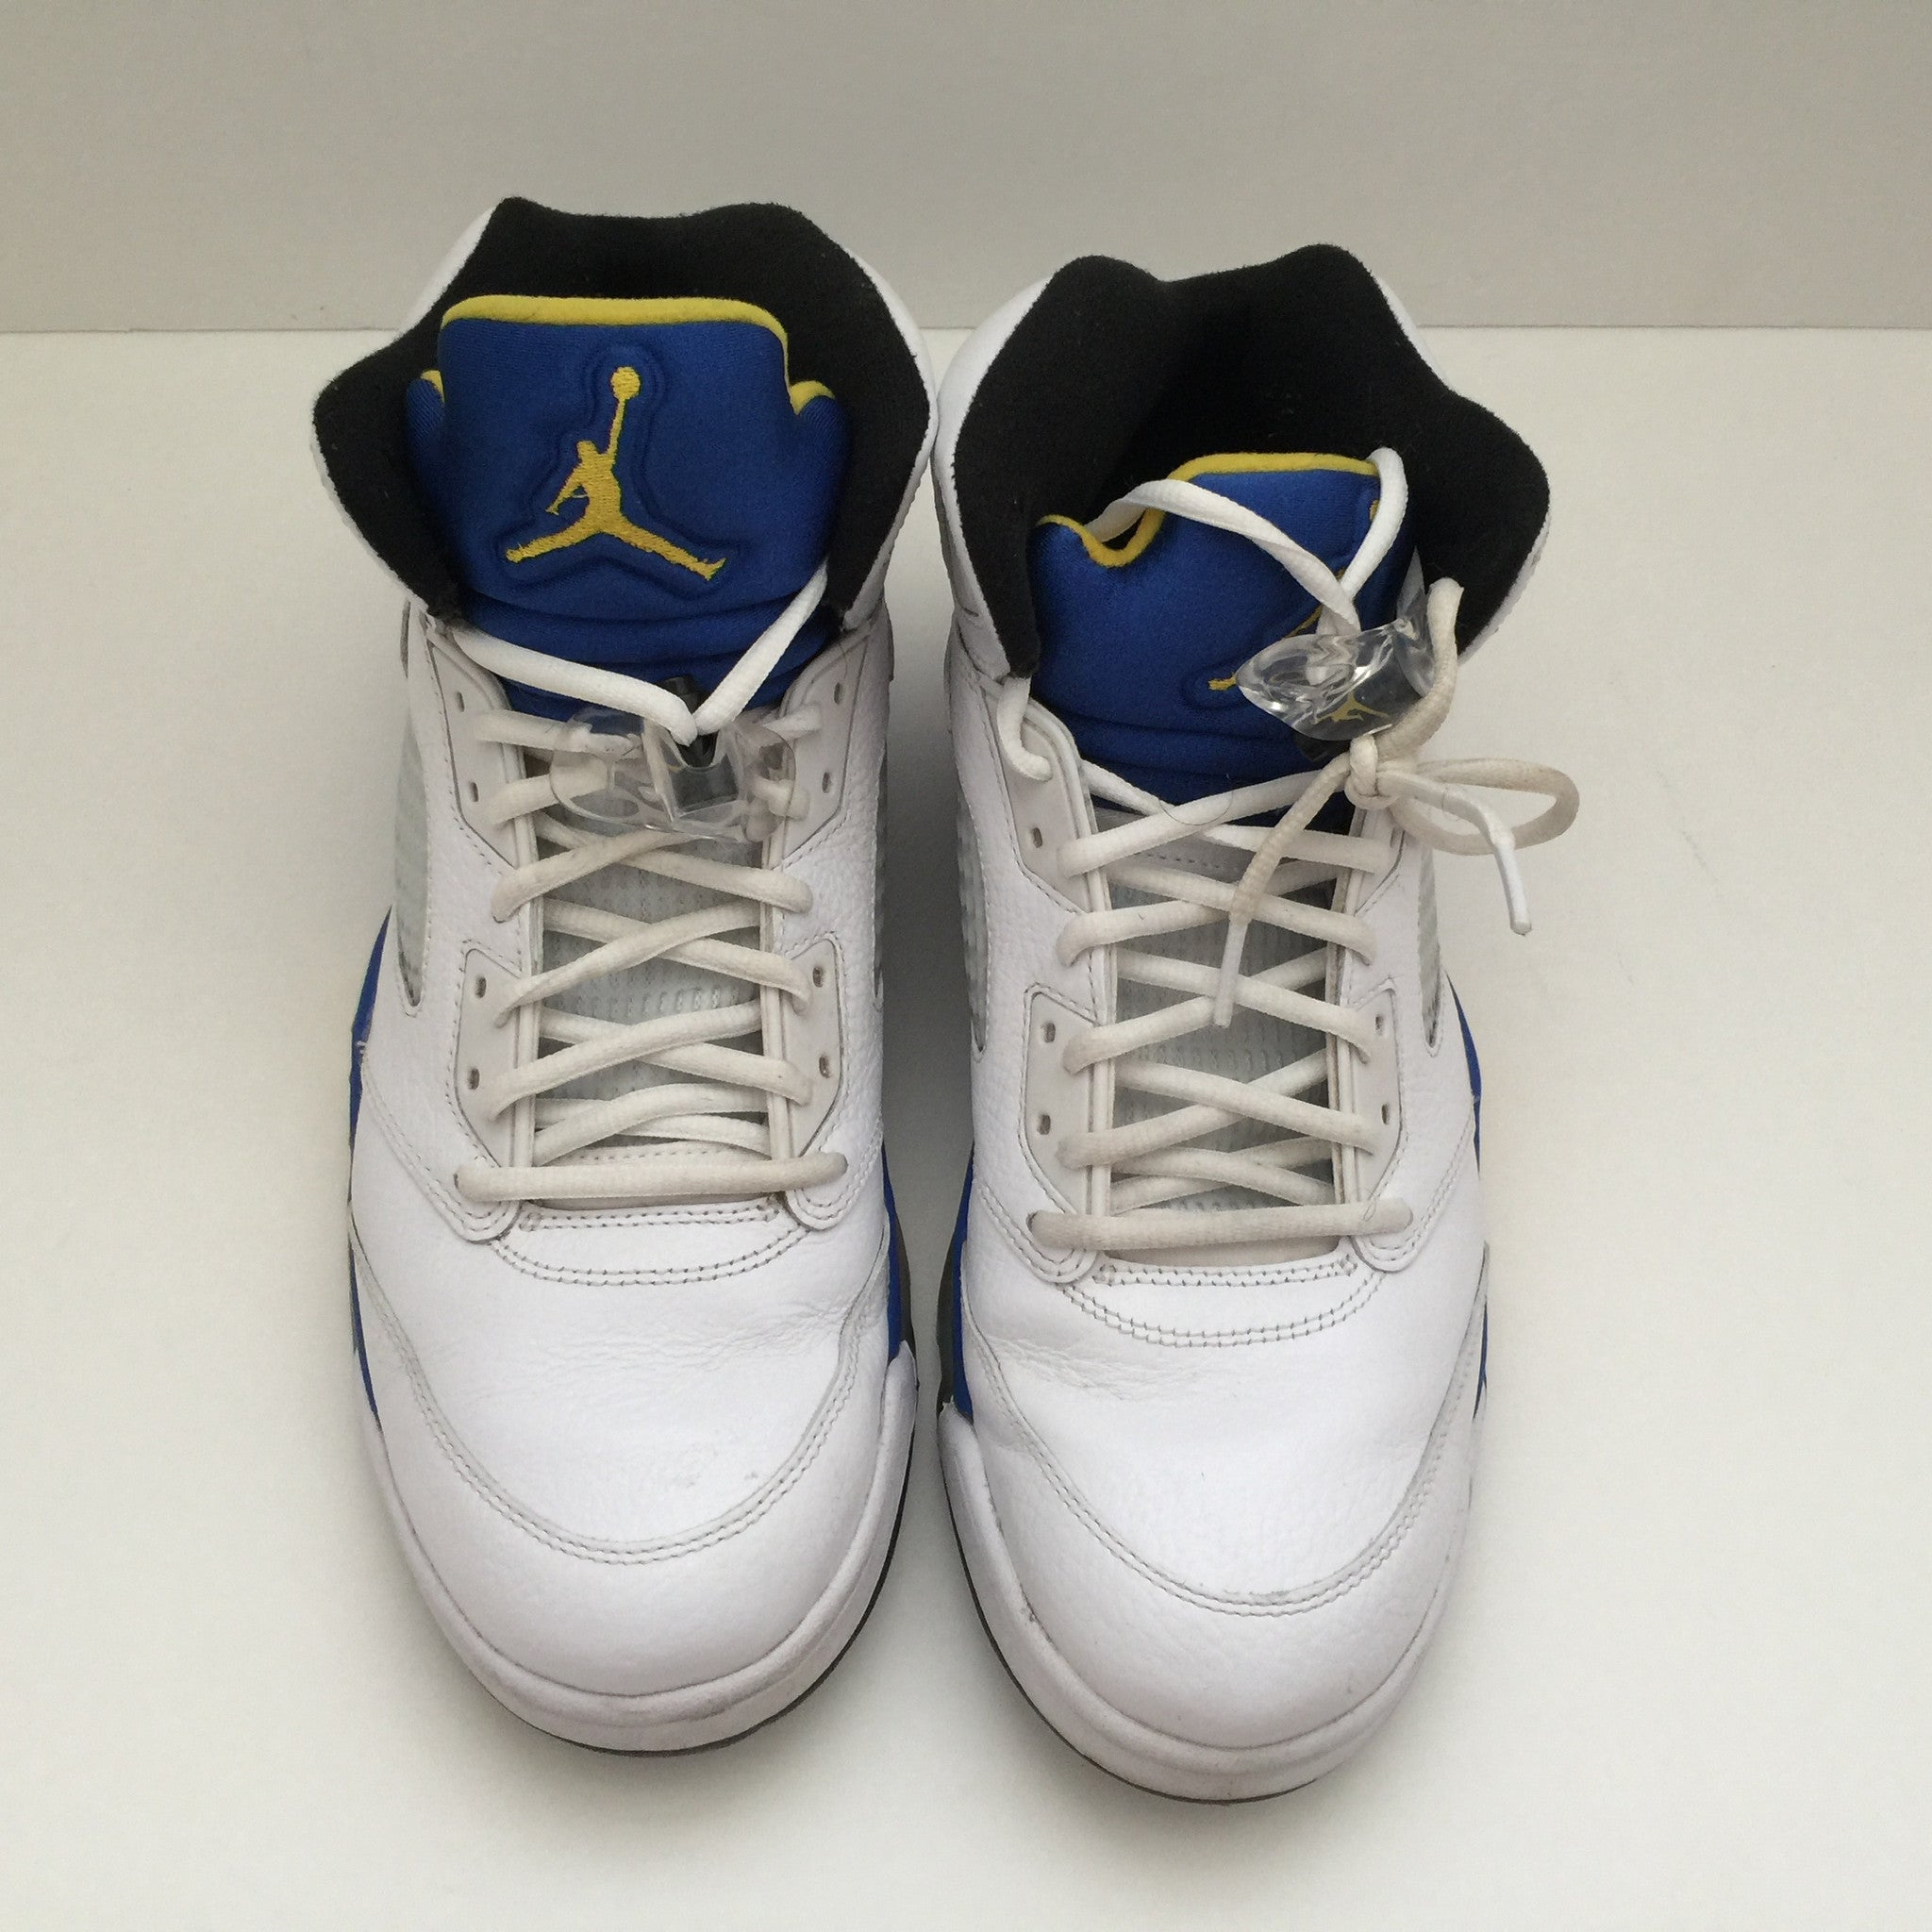 Nike Air Jordan 5 V Retro Laney Size 11.5 - DOPEFOOT  - 3